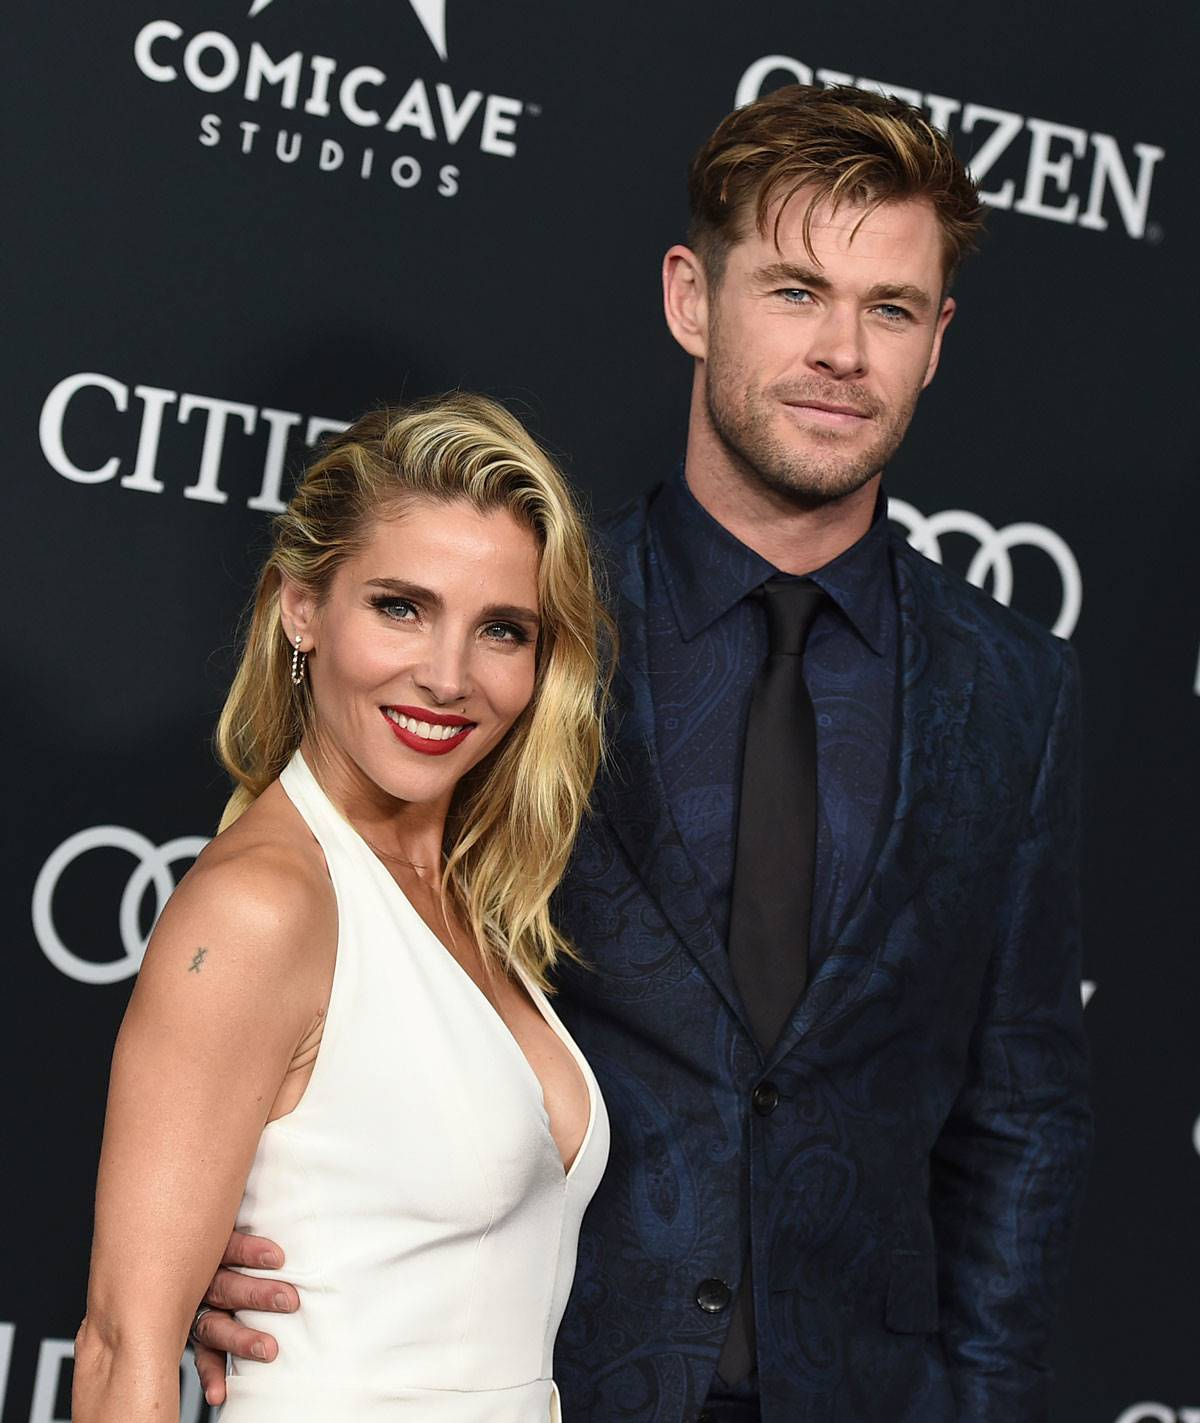 Nuestros favoritos: Elsa Pataky y CHRIS HEMSWORTH